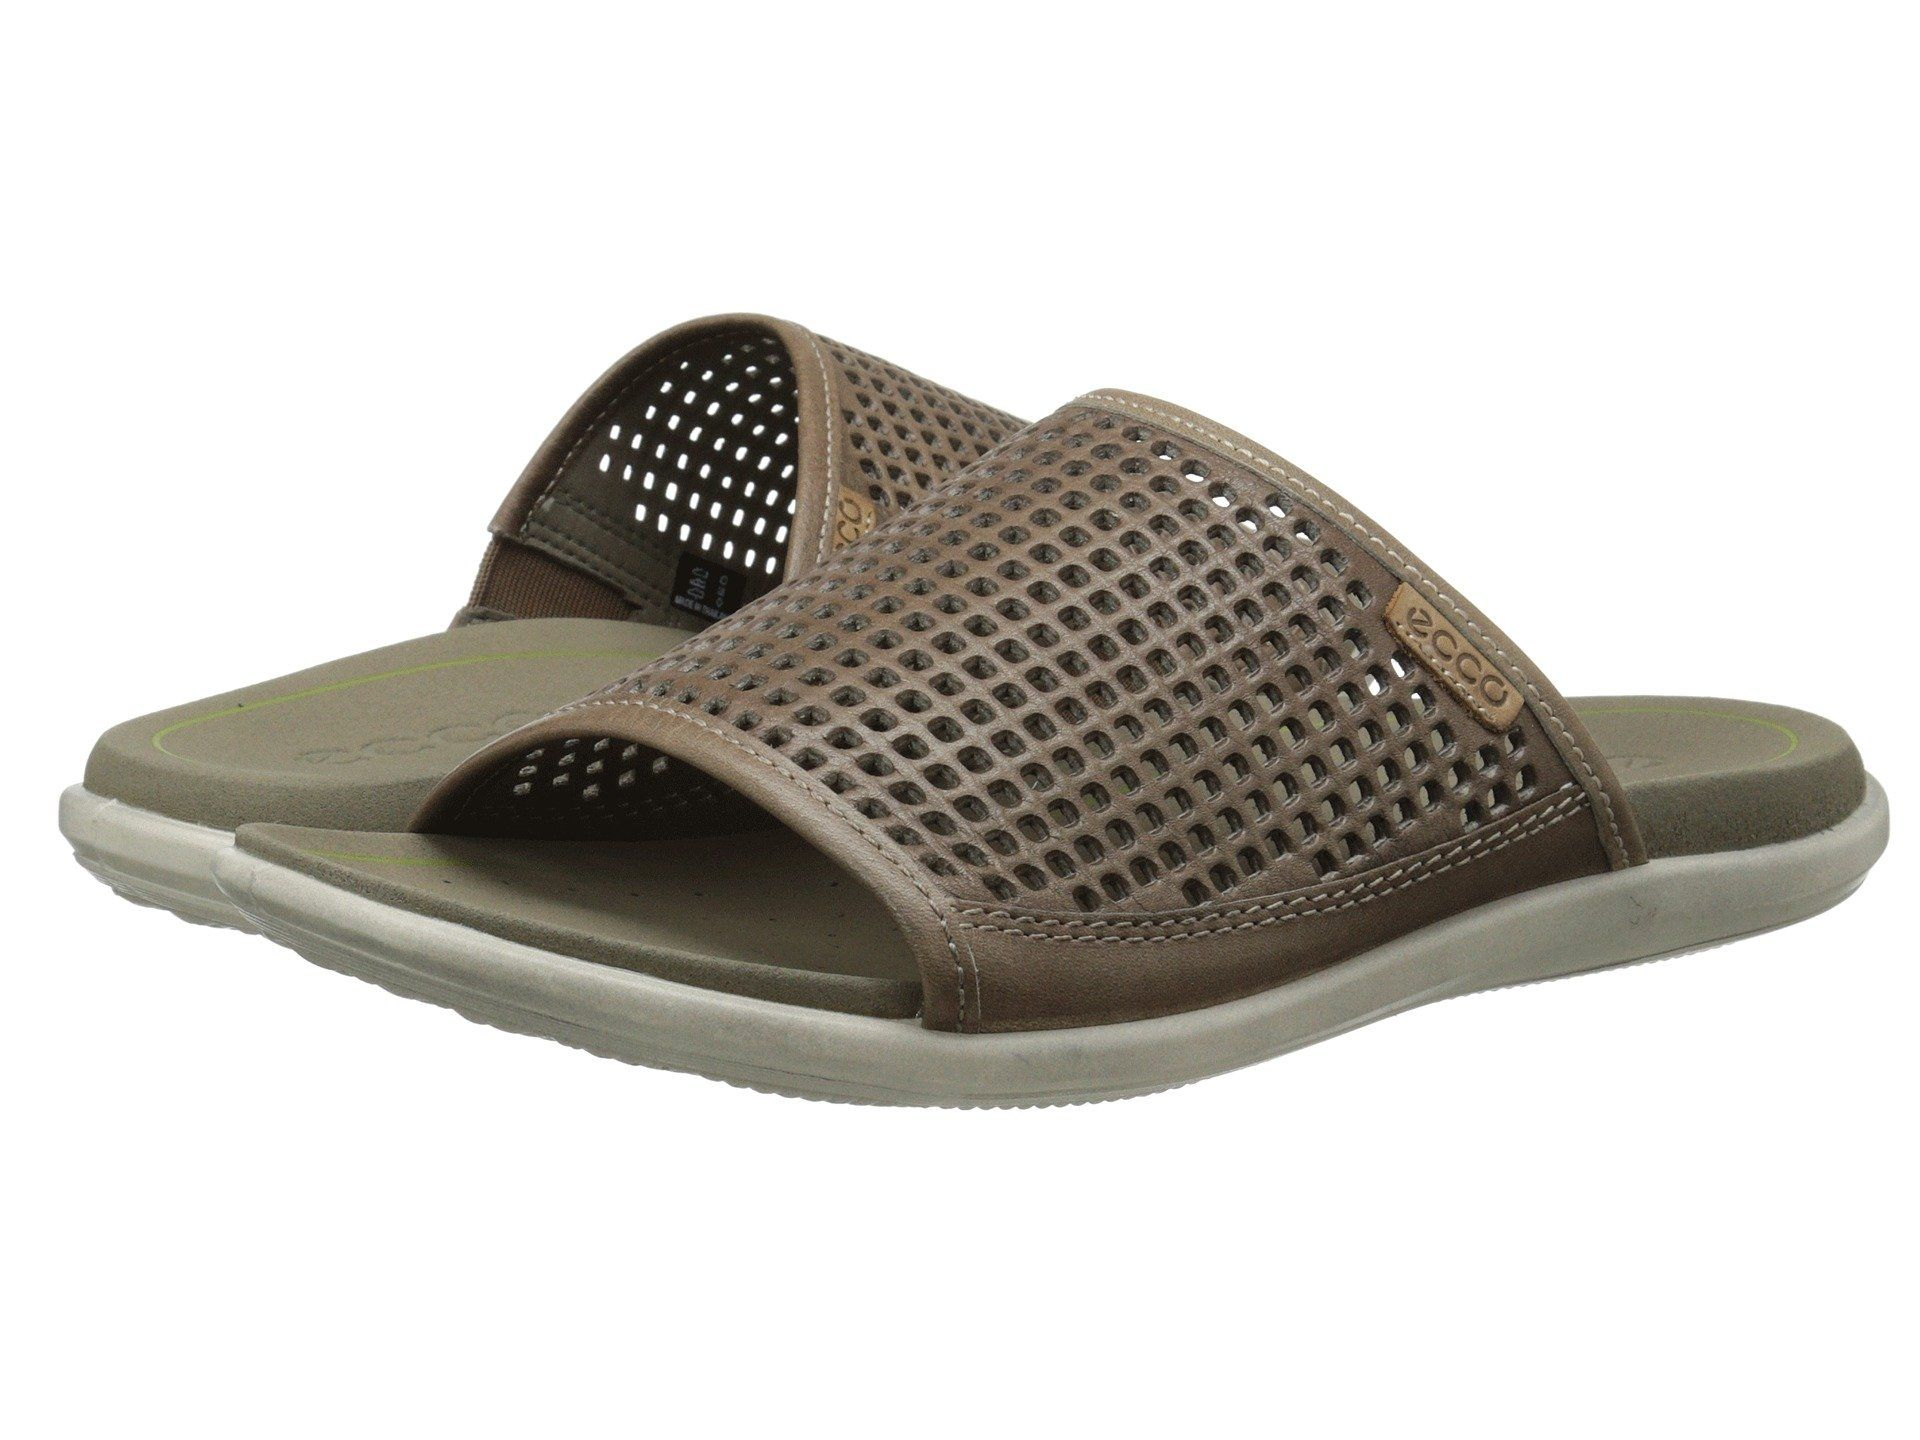 36da7de2d751 ecco collin shoes for sale   OFF74% Discounts